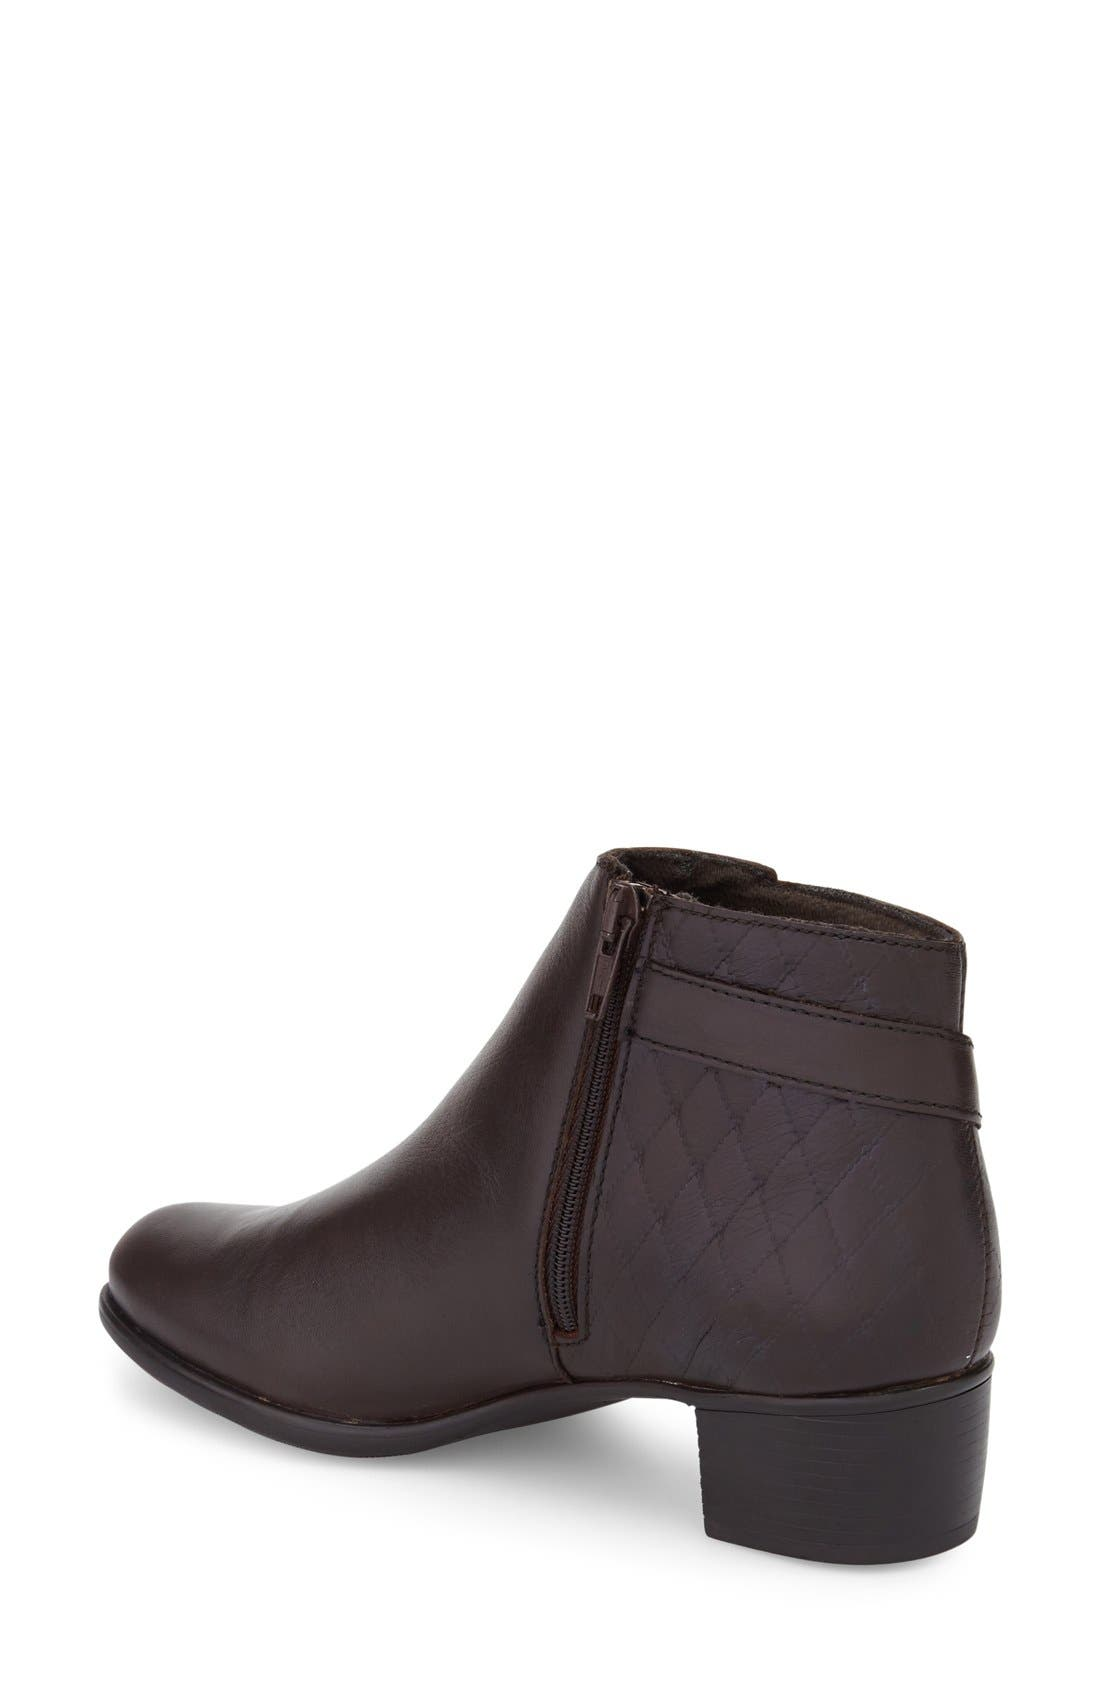 'Jolynn' Bootie,                             Alternate thumbnail 4, color,                             Brown Quilted Leather